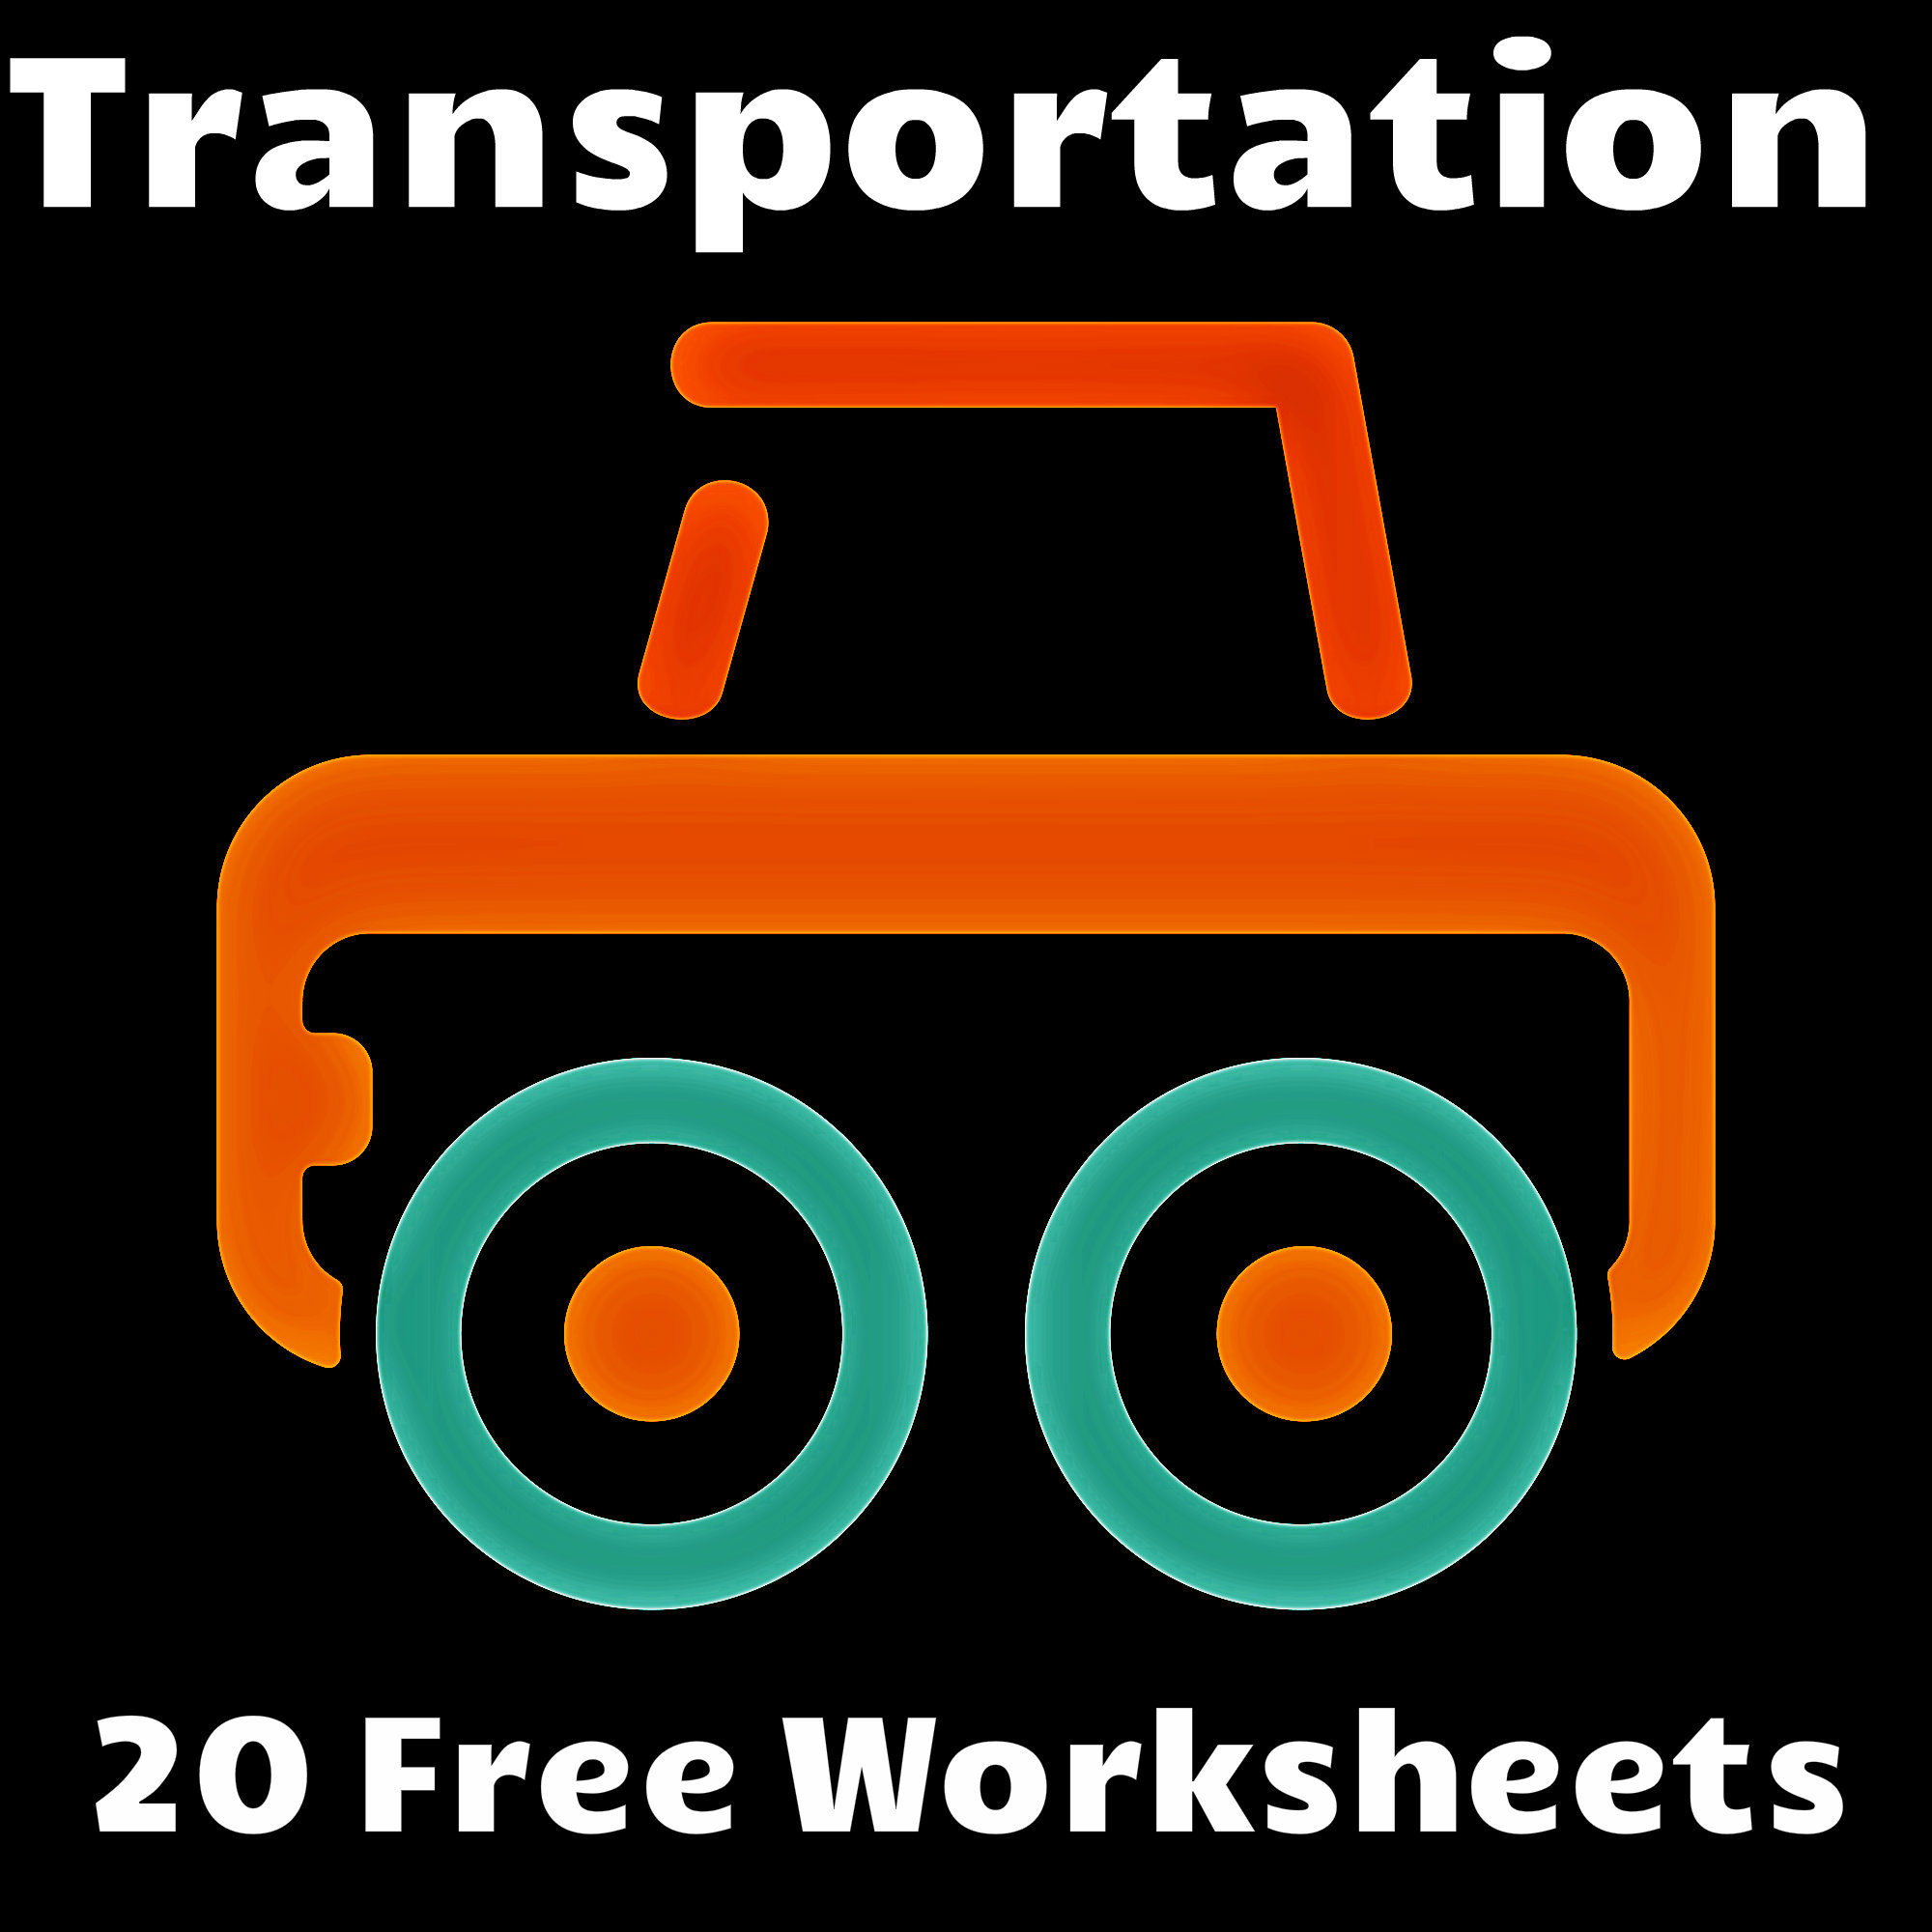 Transportation Free Worksheets